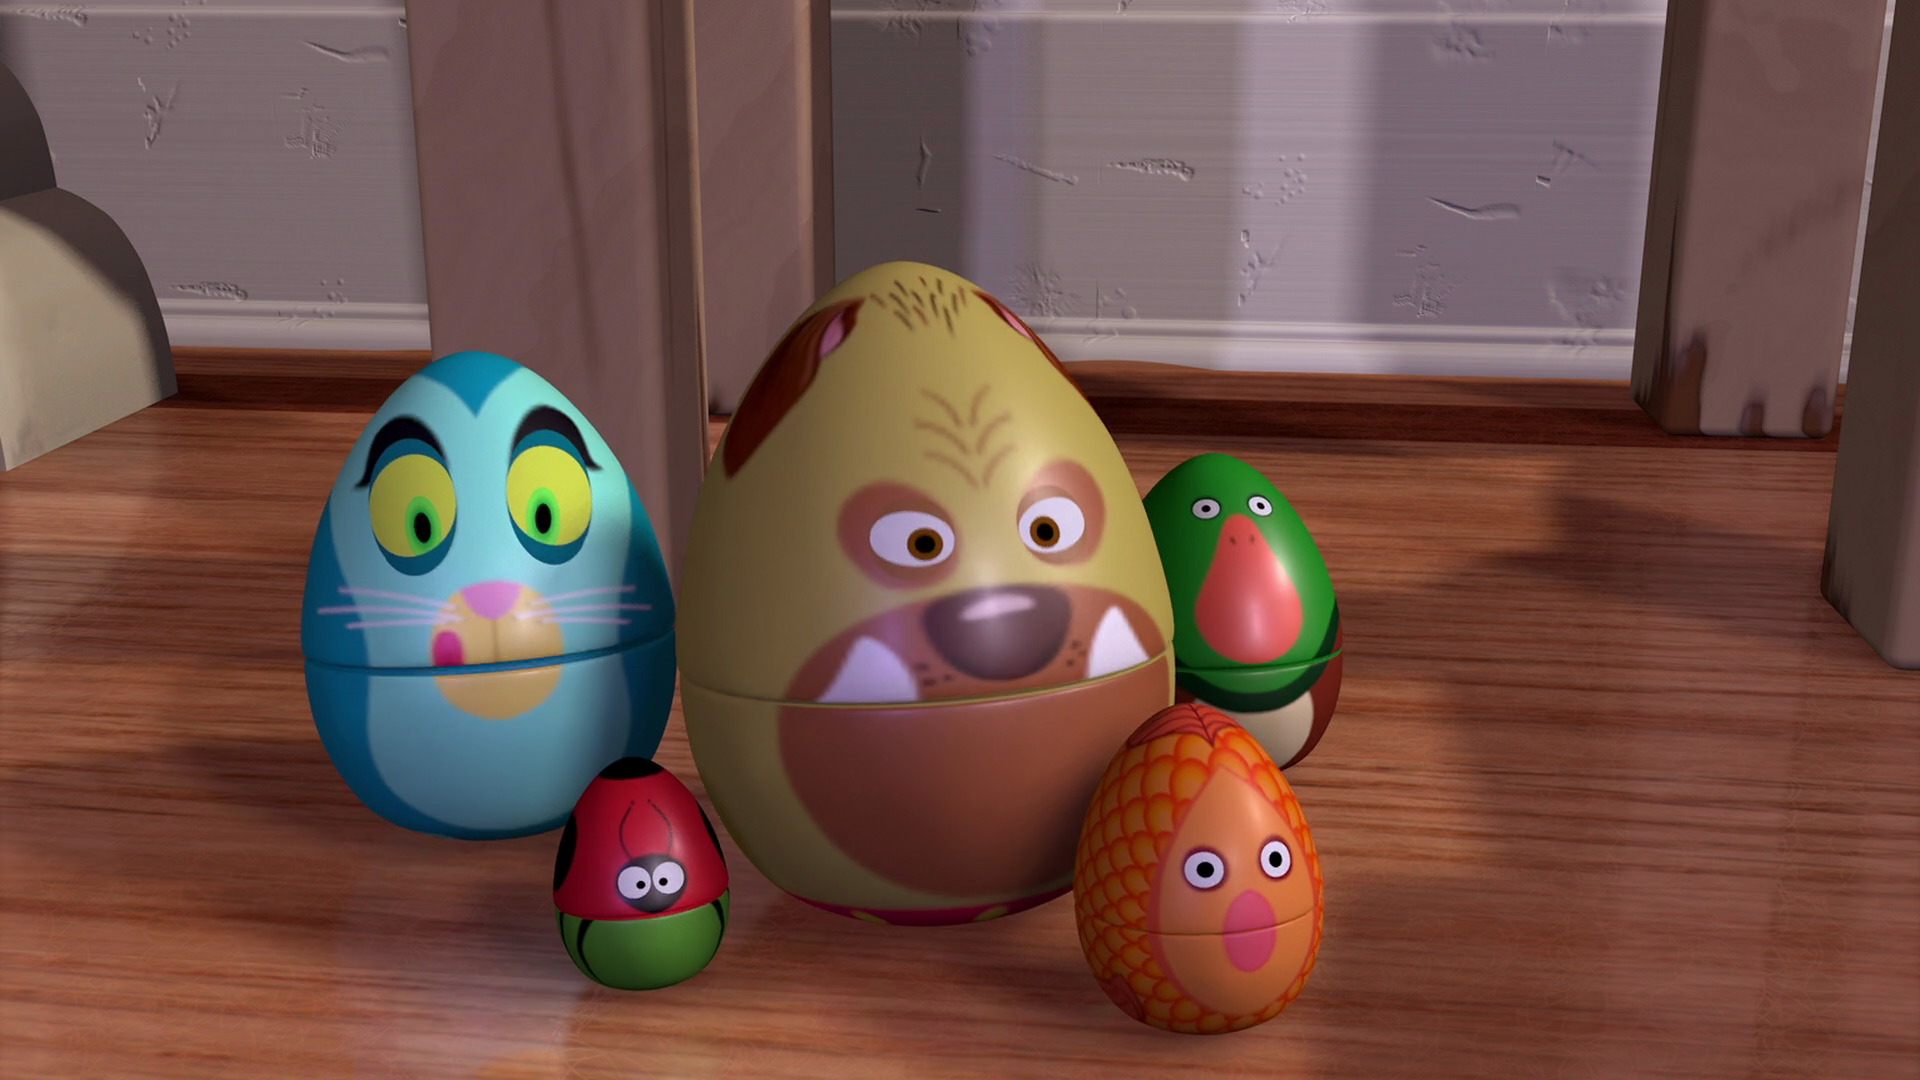 famille-troika-personnage-toy-story-02